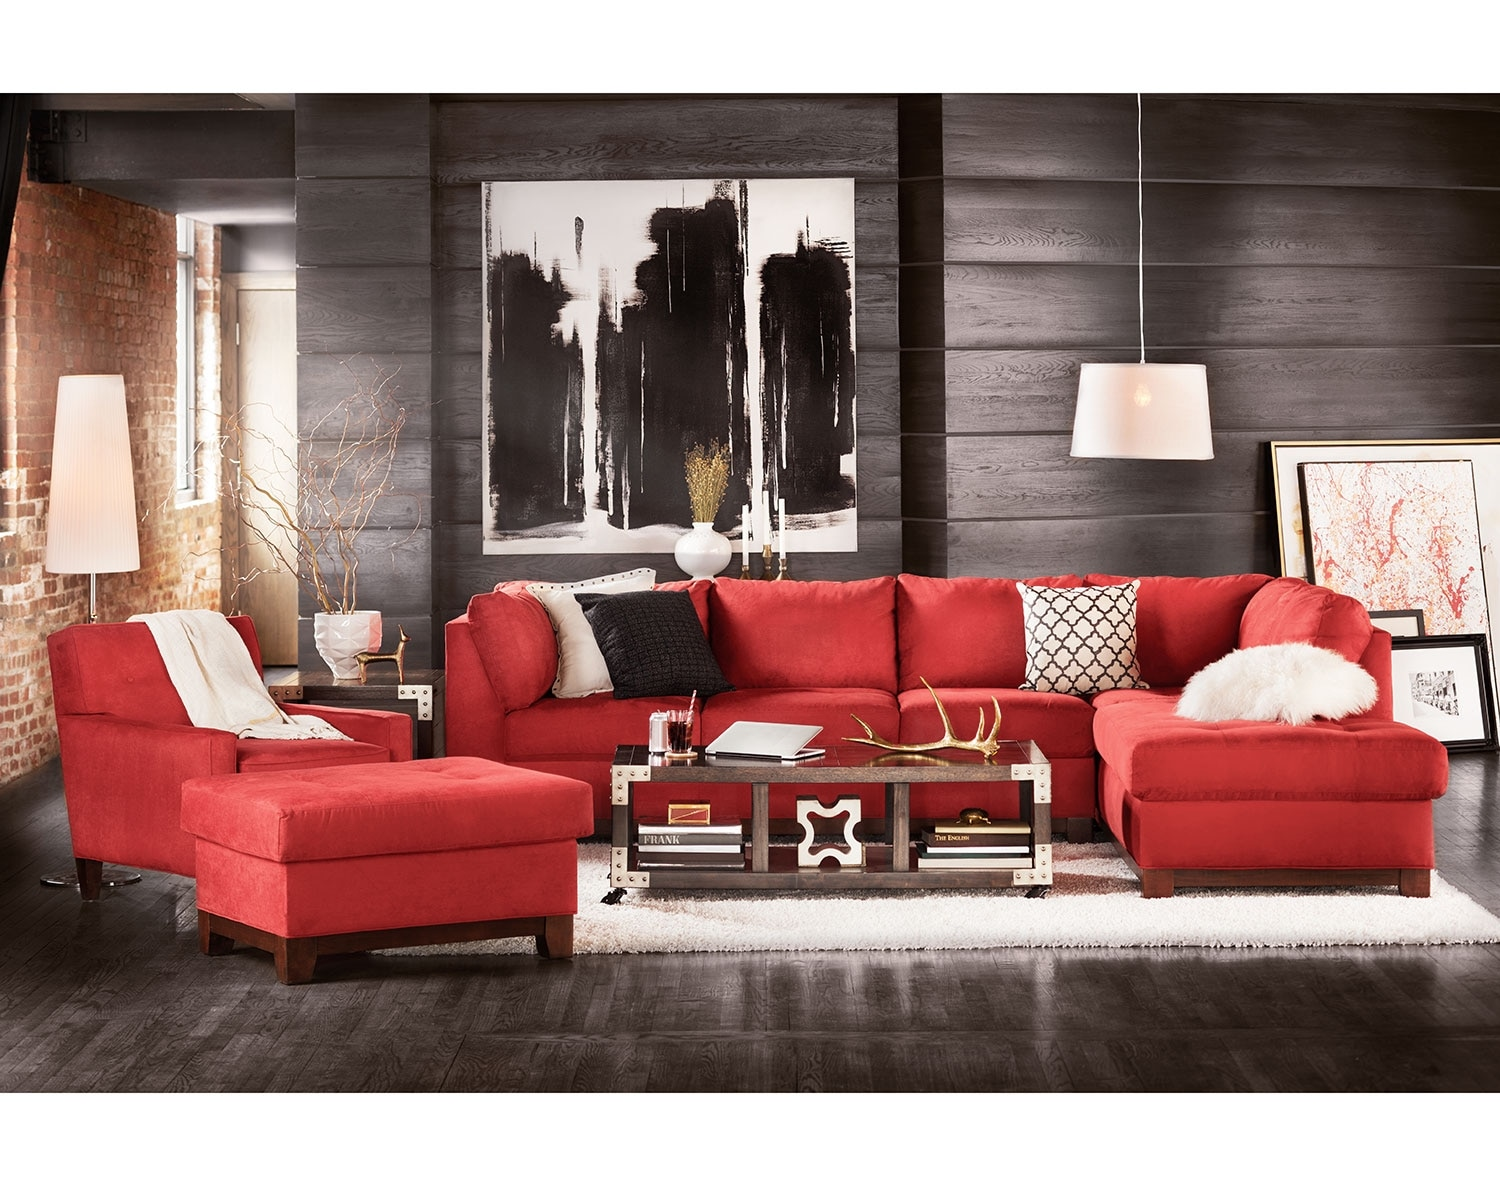 Best-Selling Living Room Furniture | American Signature Furniture